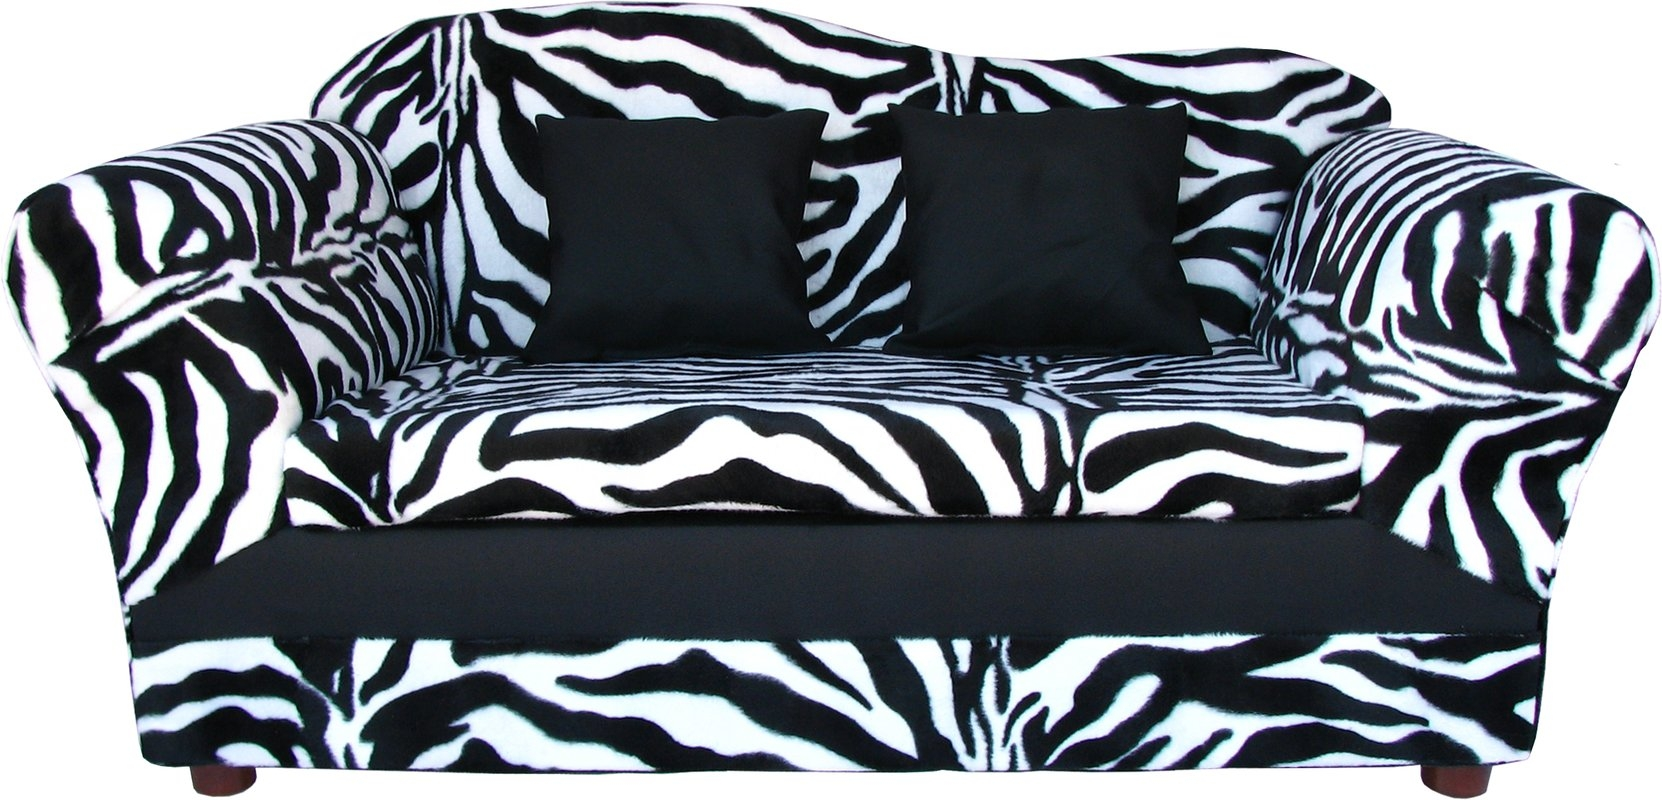 zebra print chairs for sale design within reach rocking chair 15 43 kids sofa and ottoman set ideas